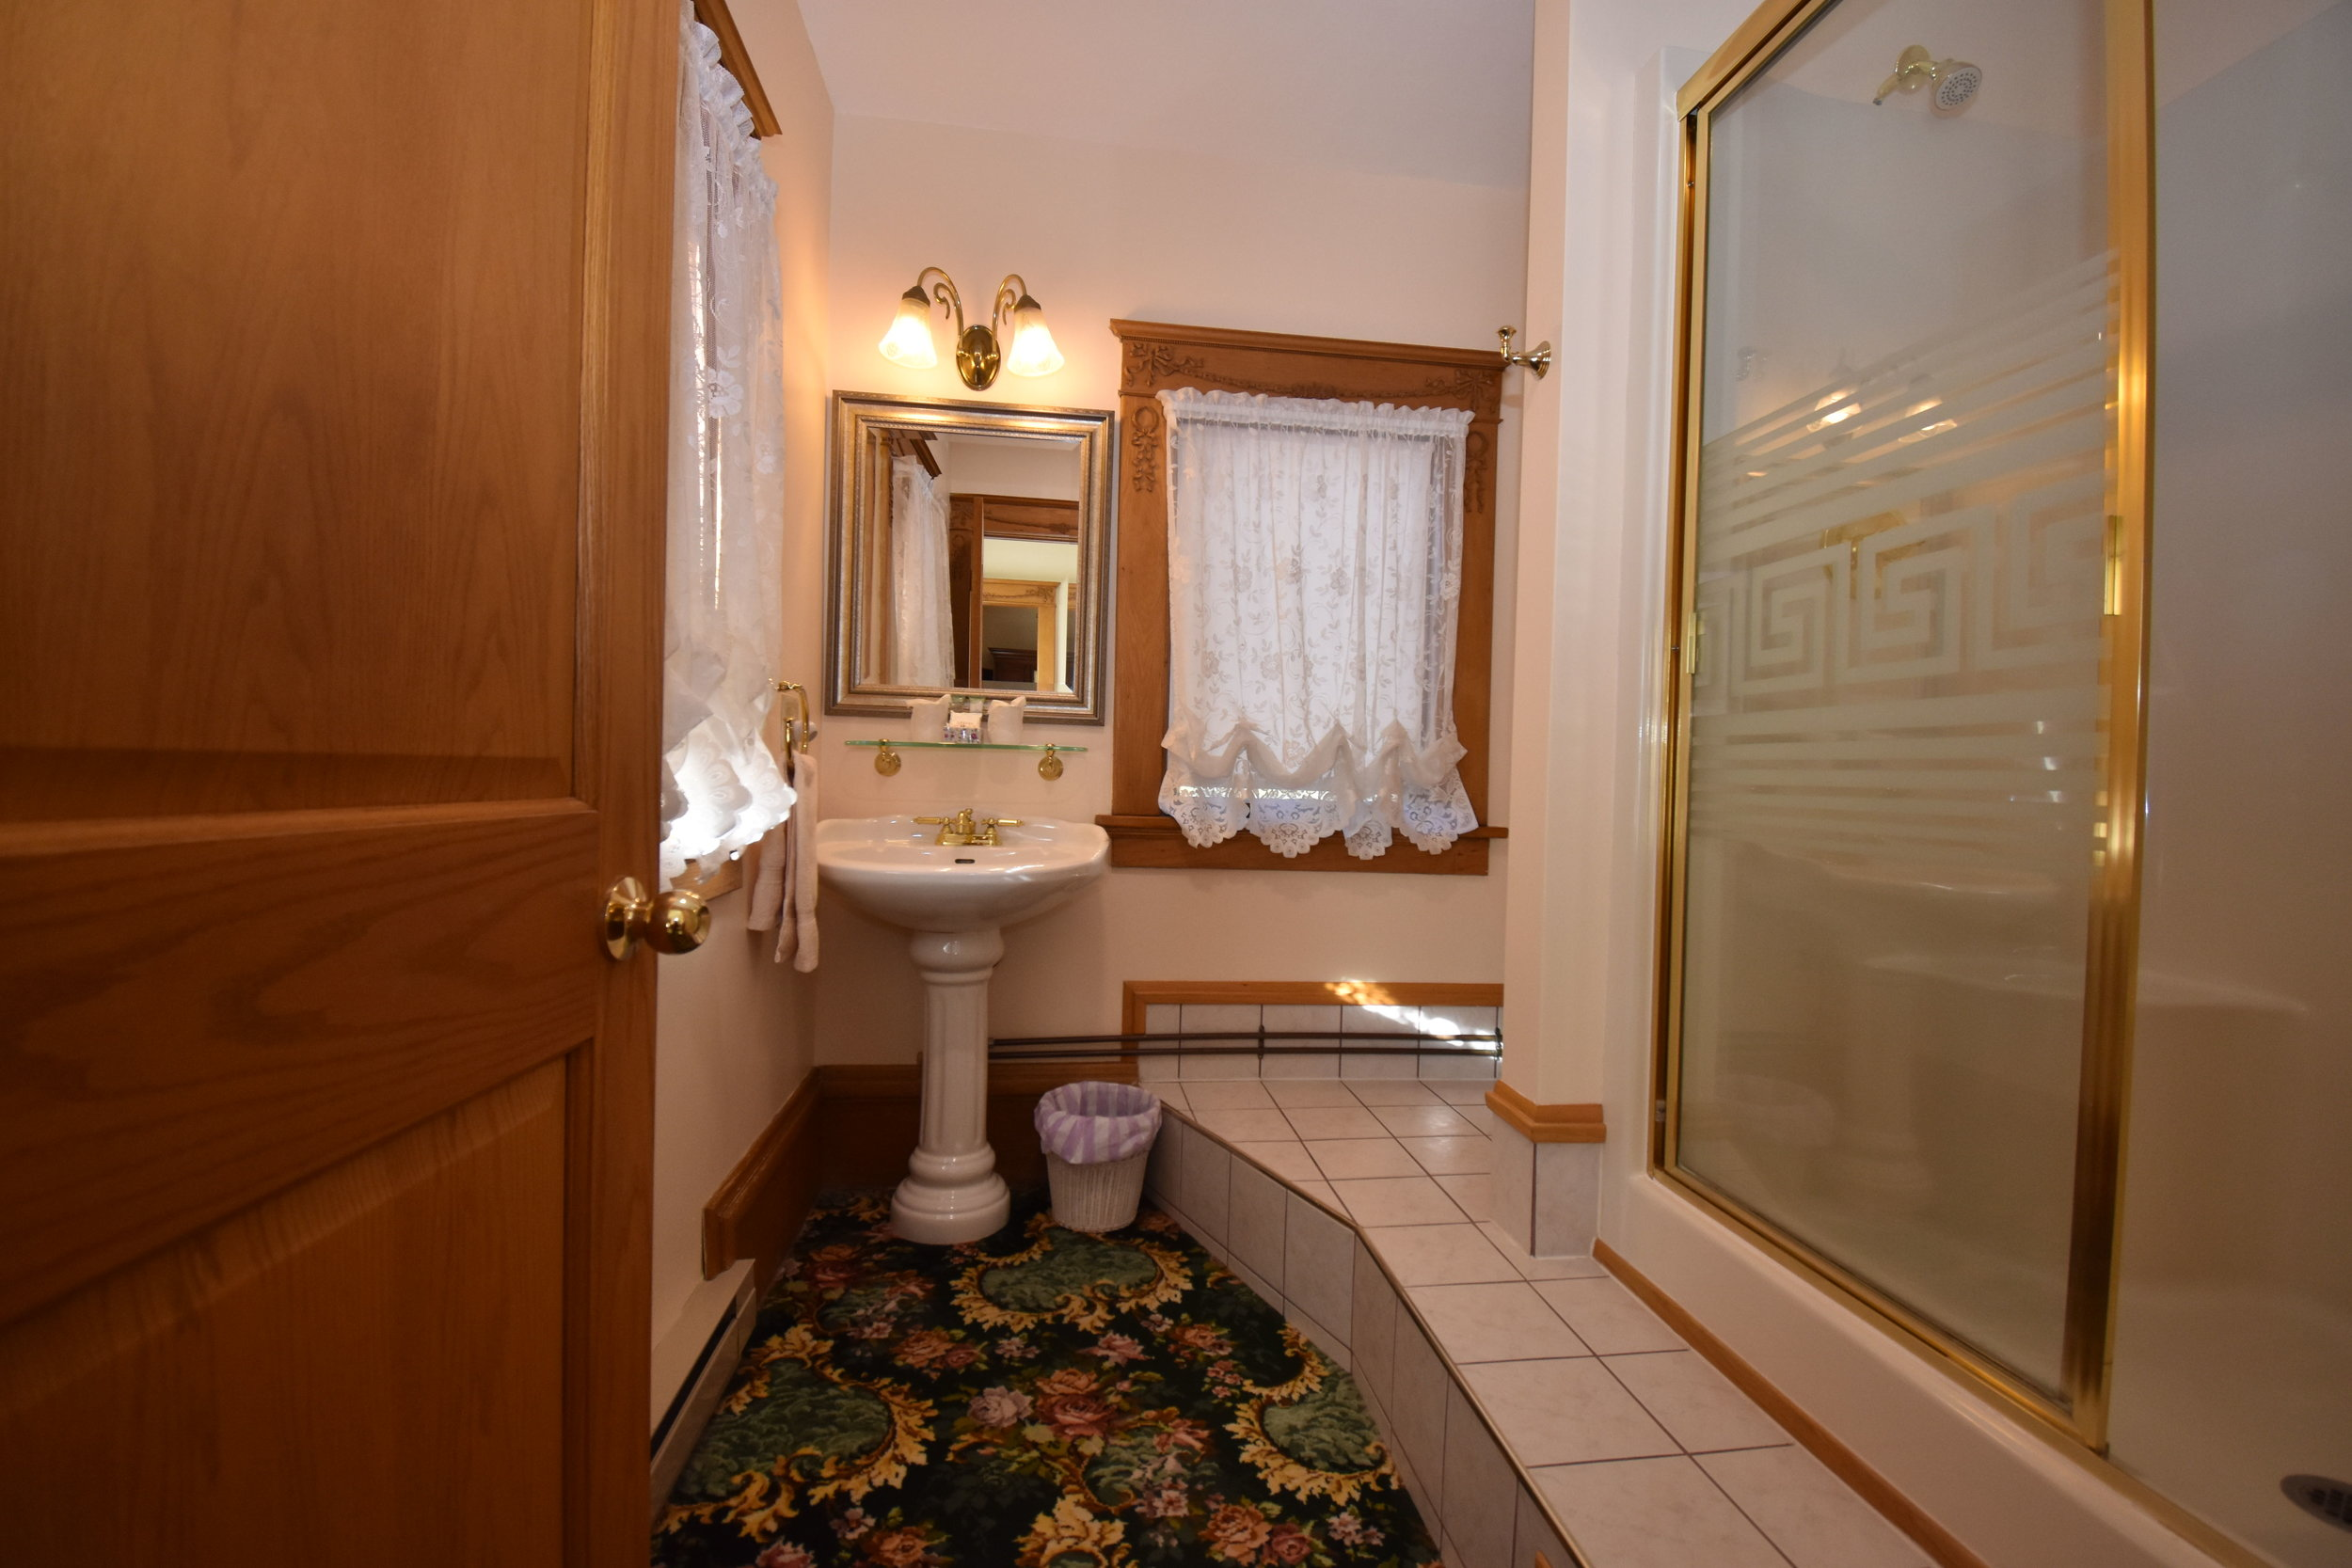 Bathroom with 2 person shower